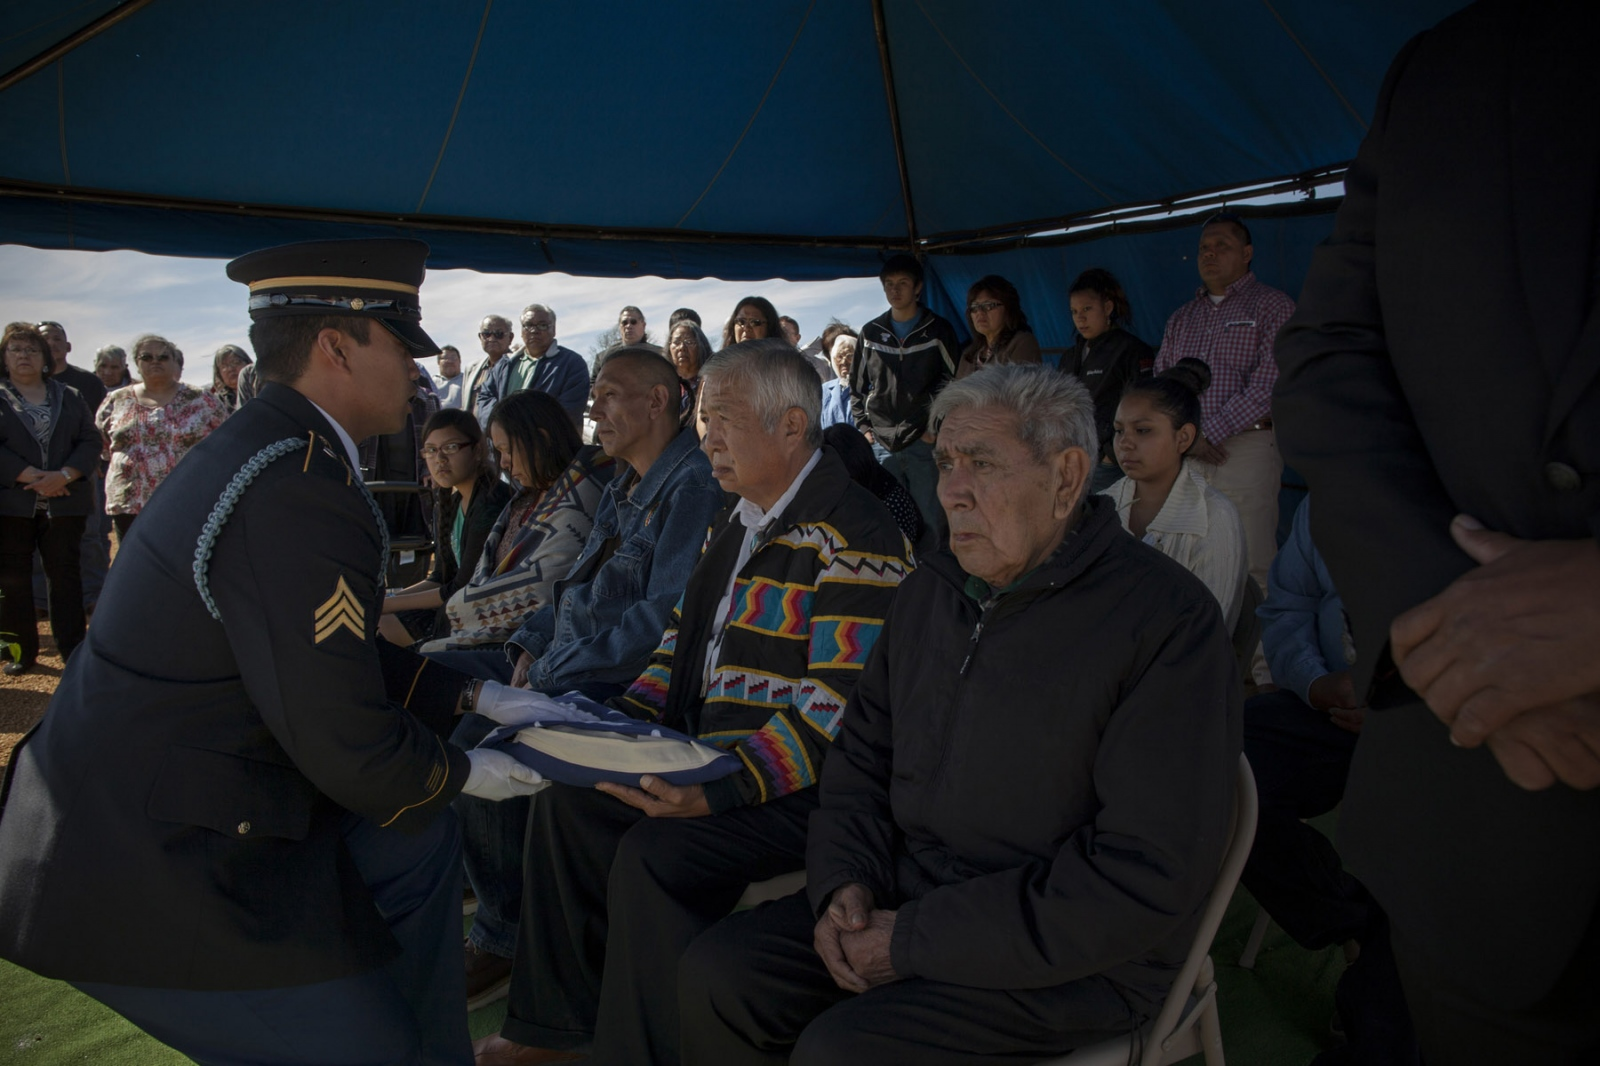 A soldier presents the folded American flag of a deceased veteran to next of kin, Rick Harjo, during funeral services for his uncle, Edmond A. Harjo in Seminole, Oklahoma, on Friday, April 4, 2014. Mr. Harjo was a Seminole Code Talker who served in Europe during World War II as a Private First Class and returned to the US after active duty in 1944 and remained in Maud, a nearby town, until his death at 96 on Monday, March 31, 2014. He was awarded the Congressional Gold Medal in 2013 for his efforts in using his language during the war. He was buried in the new veterans memorial grounds on the Seminole Nation and was given a small military funeral.